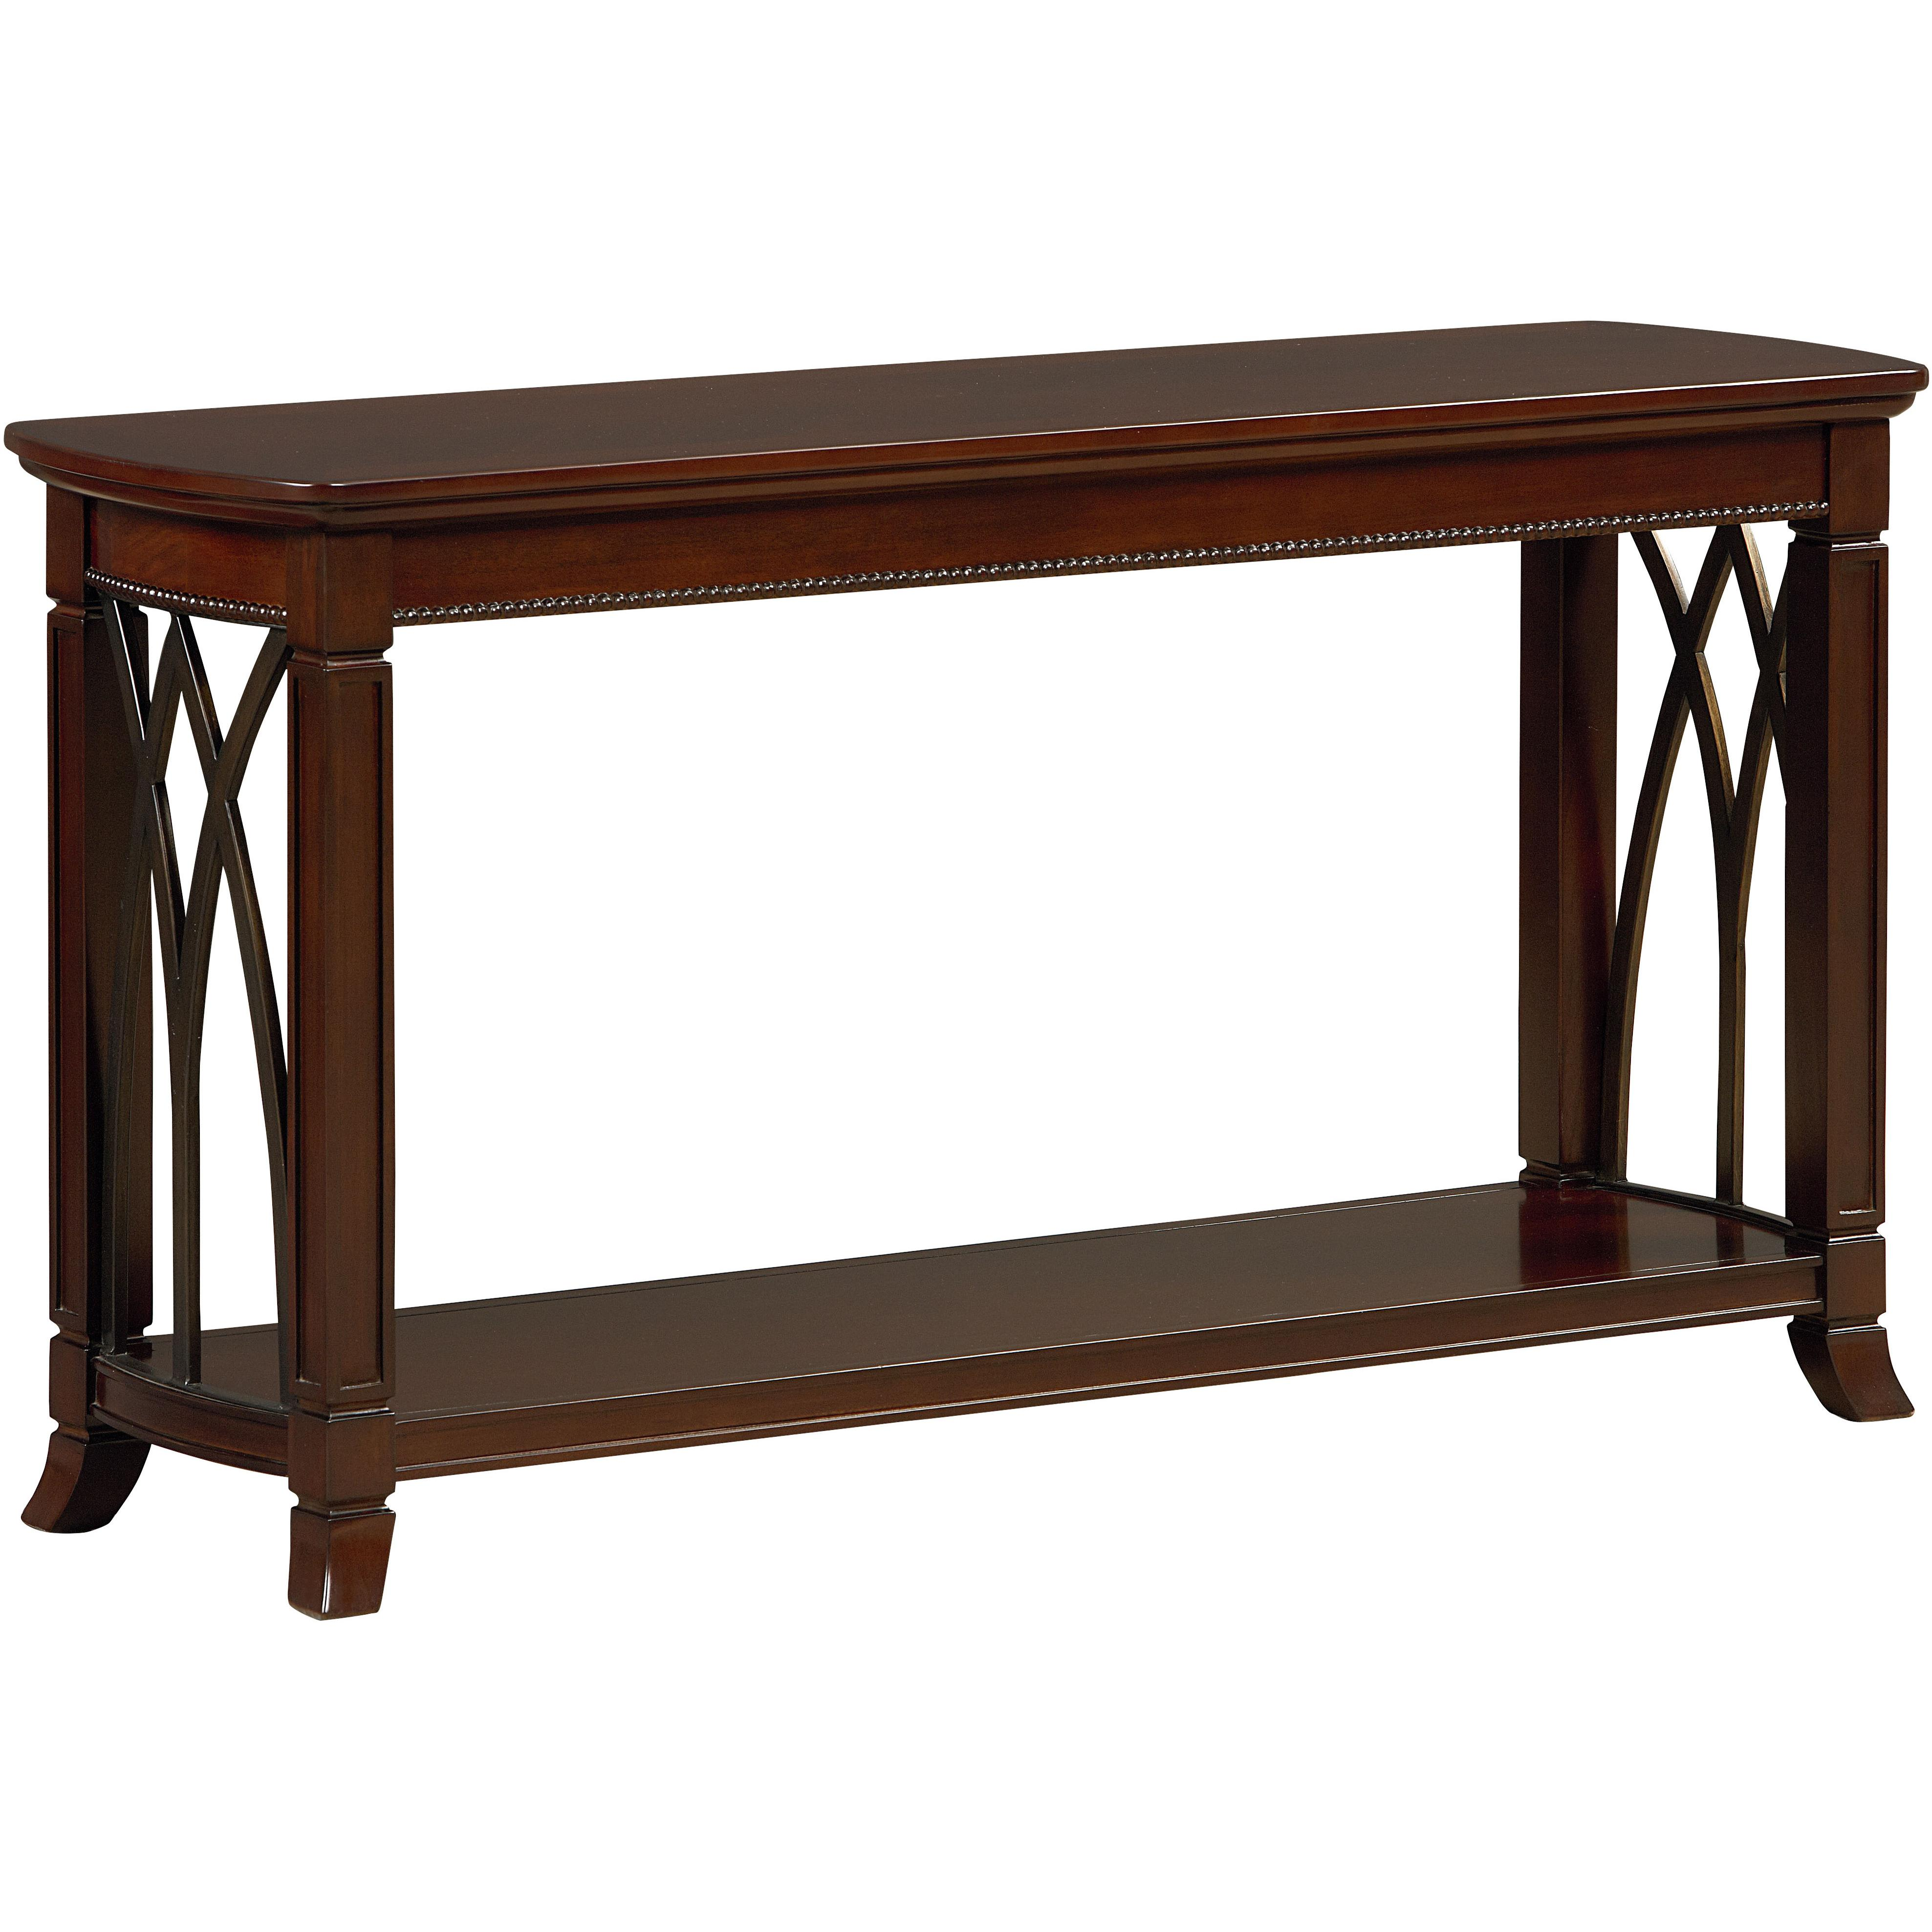 Standard Furniture Abbey Sofa Table with Shelf Household